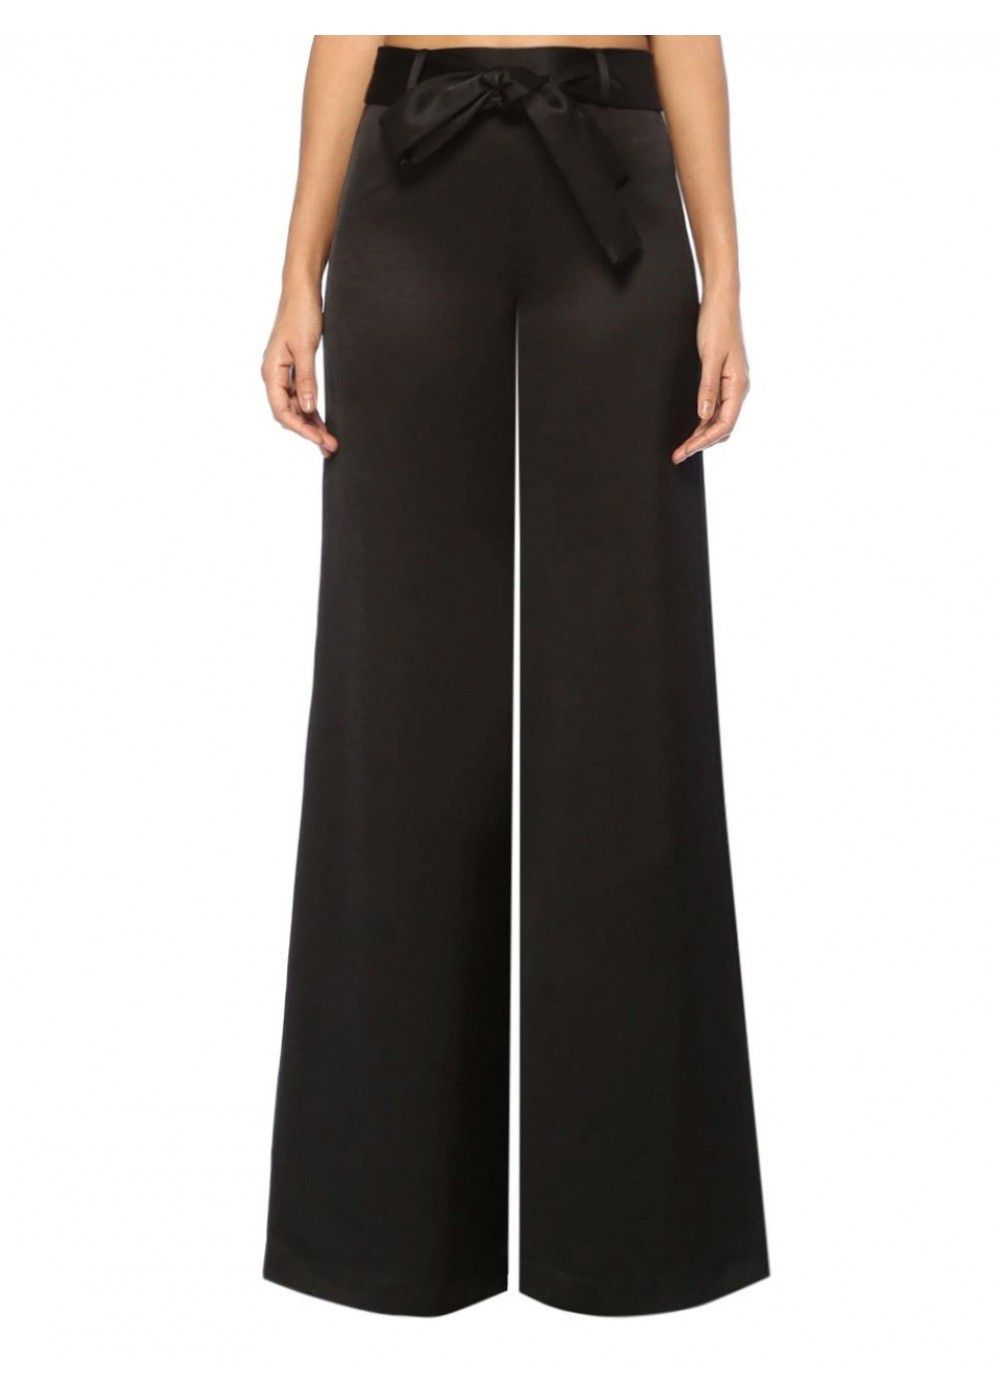 Alexis Nerissa Pants in Black